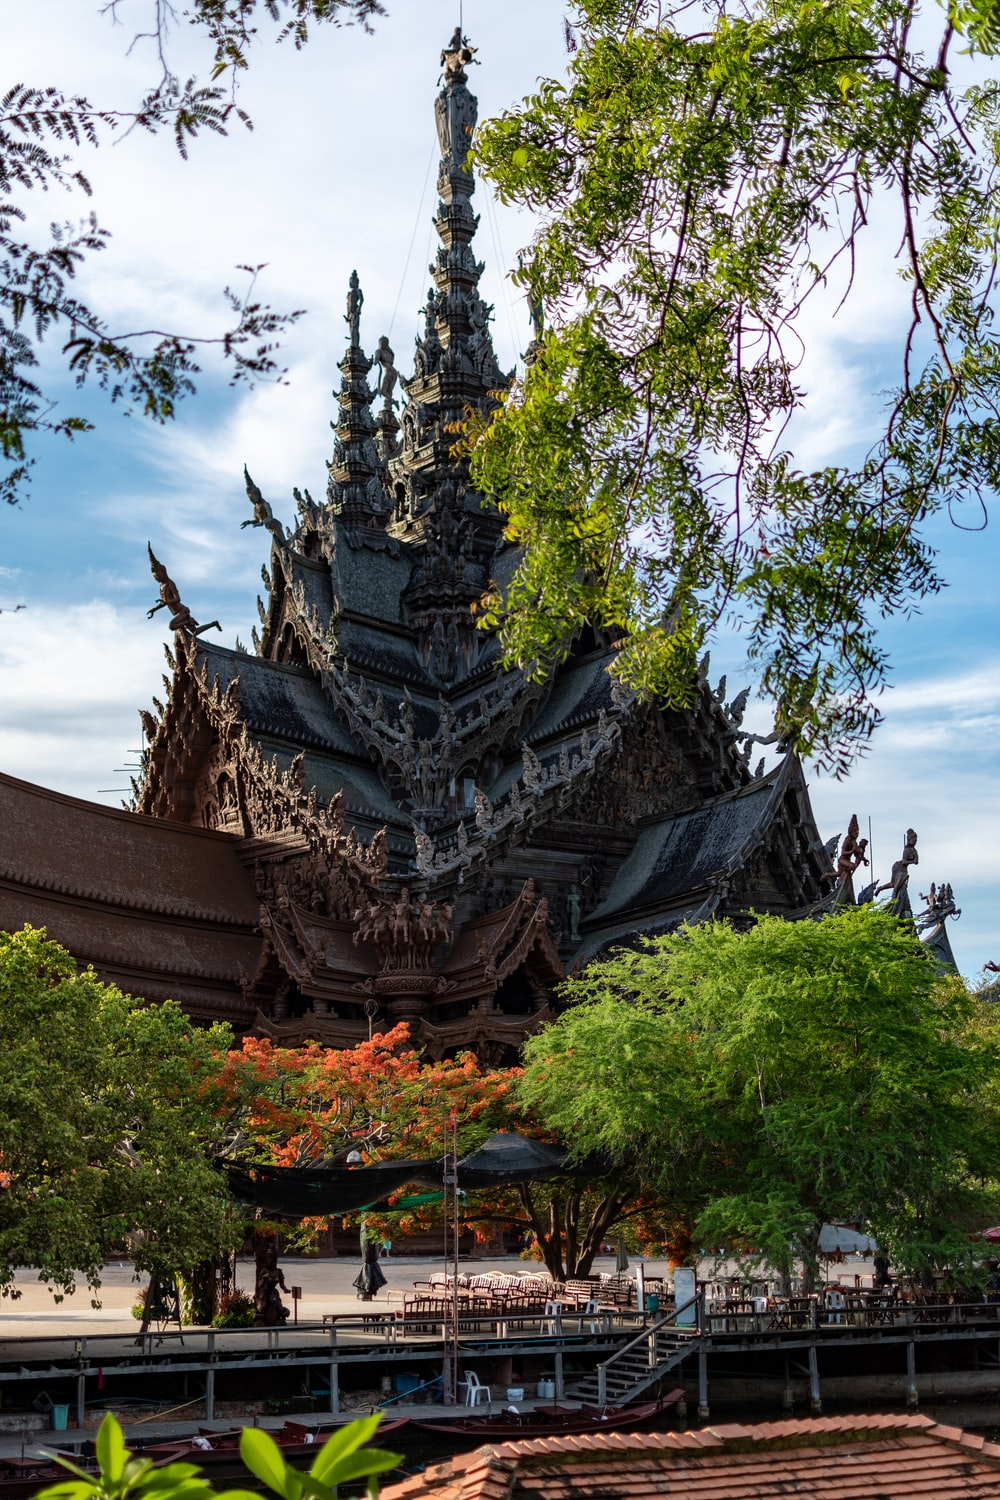 brown temple under blue sky during daytime